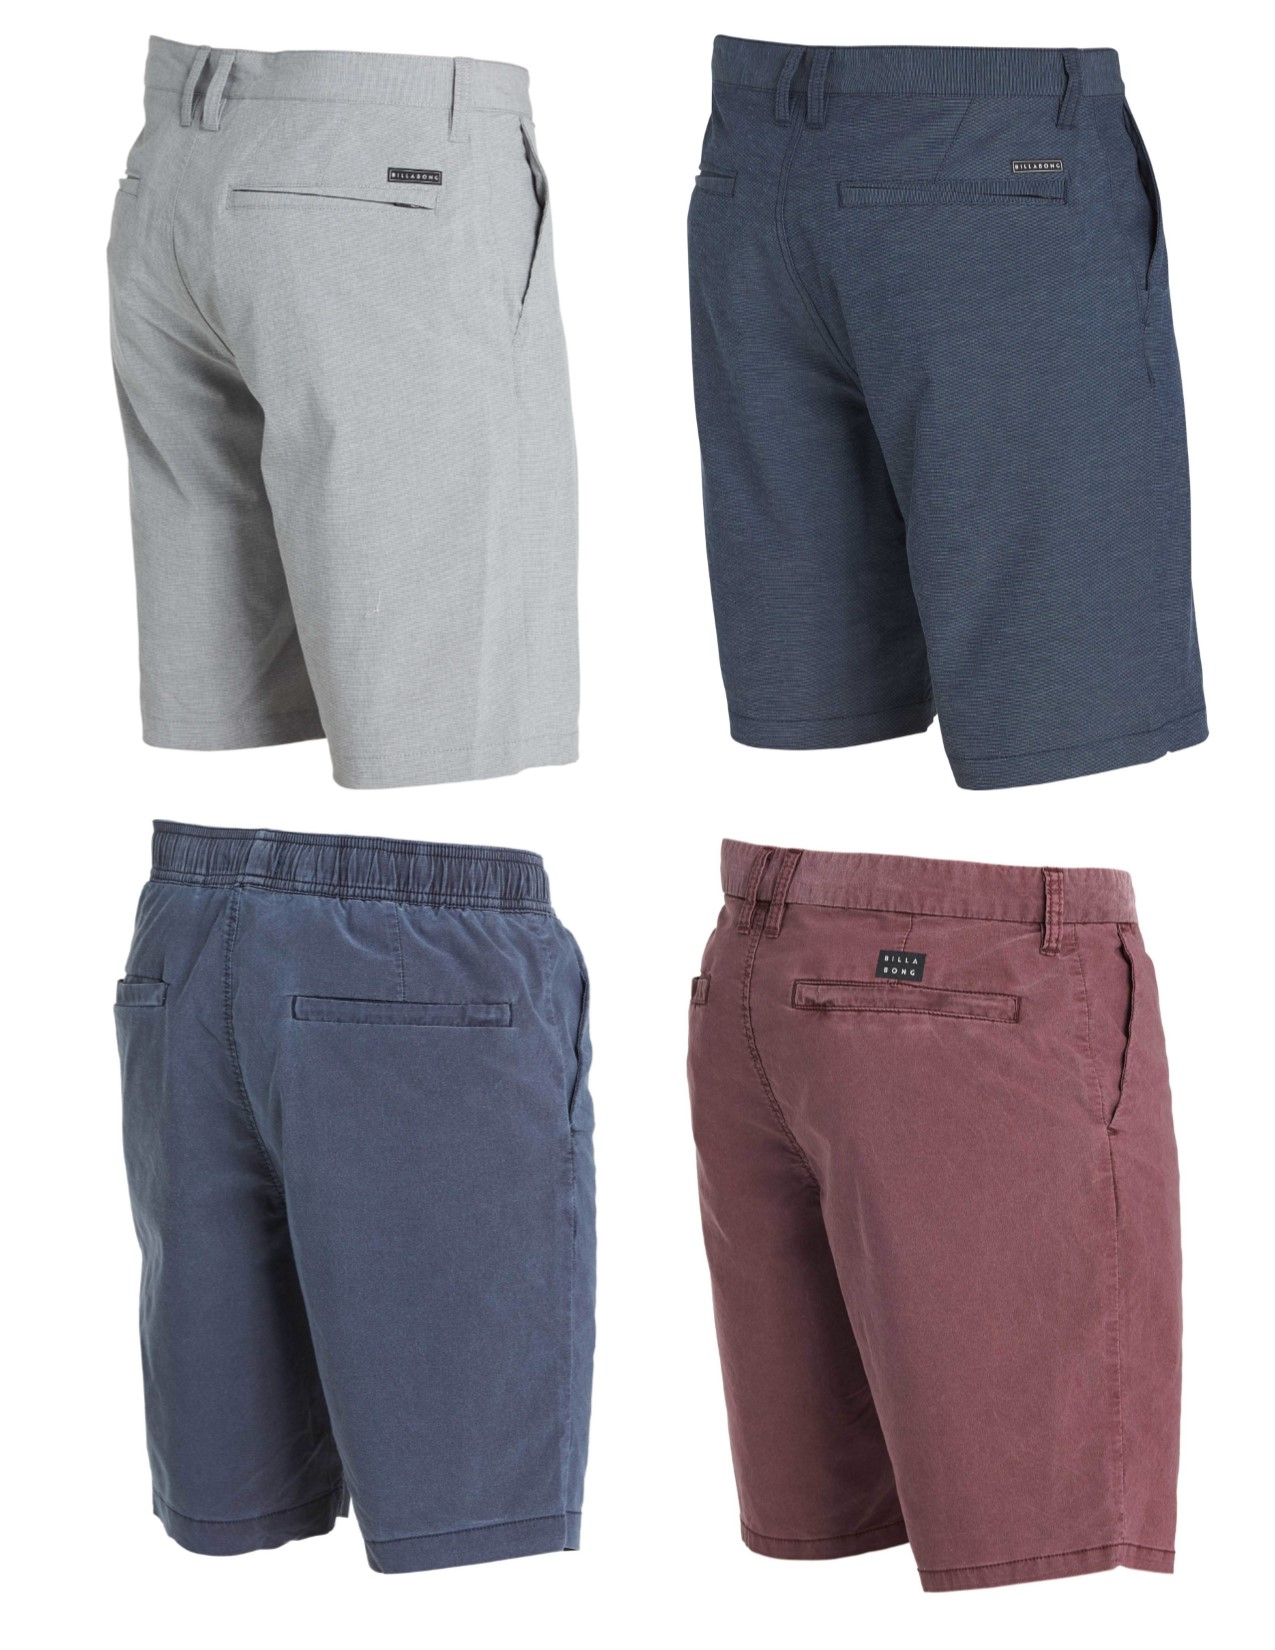 2018 billabong mens shorts